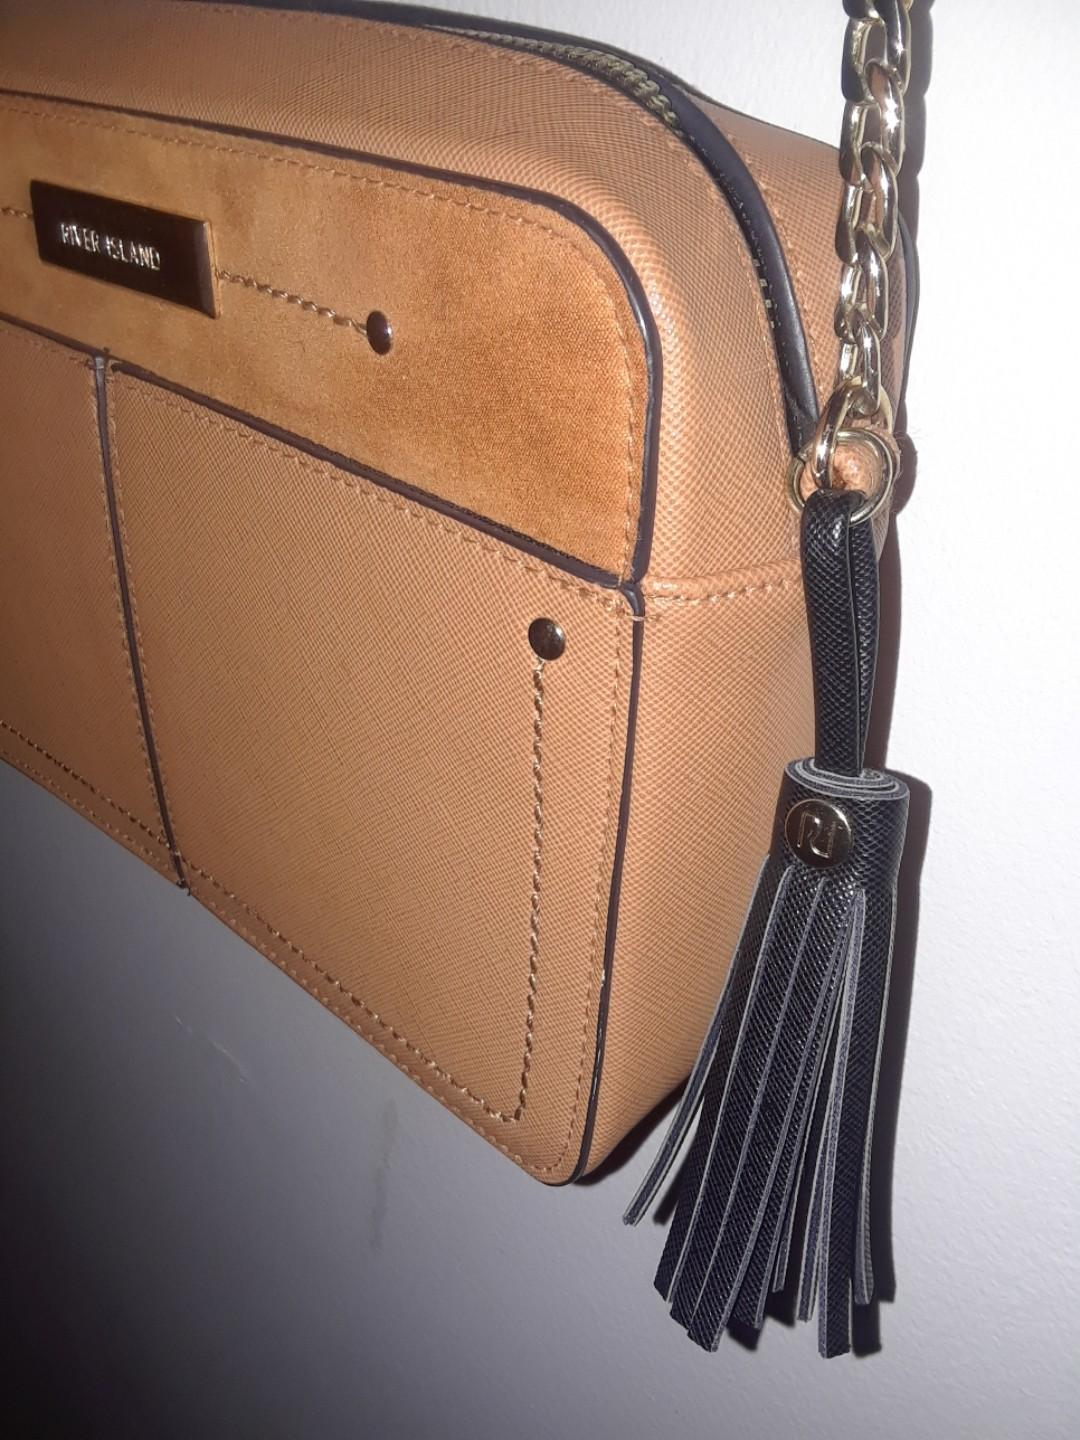 River Island 2 options (or as a lot) used purses bags black / camel OR snakeskin / suede